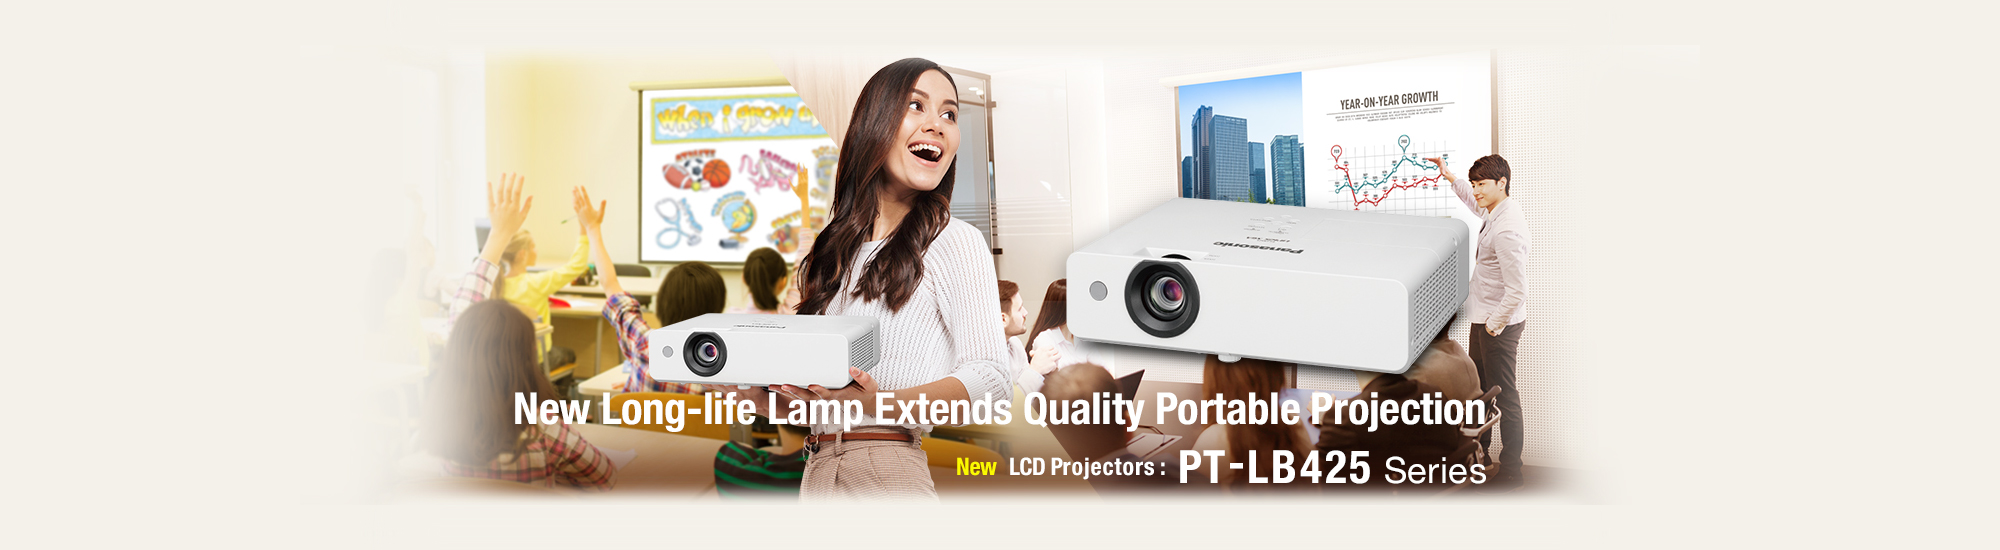 panasonic-home-banner-1